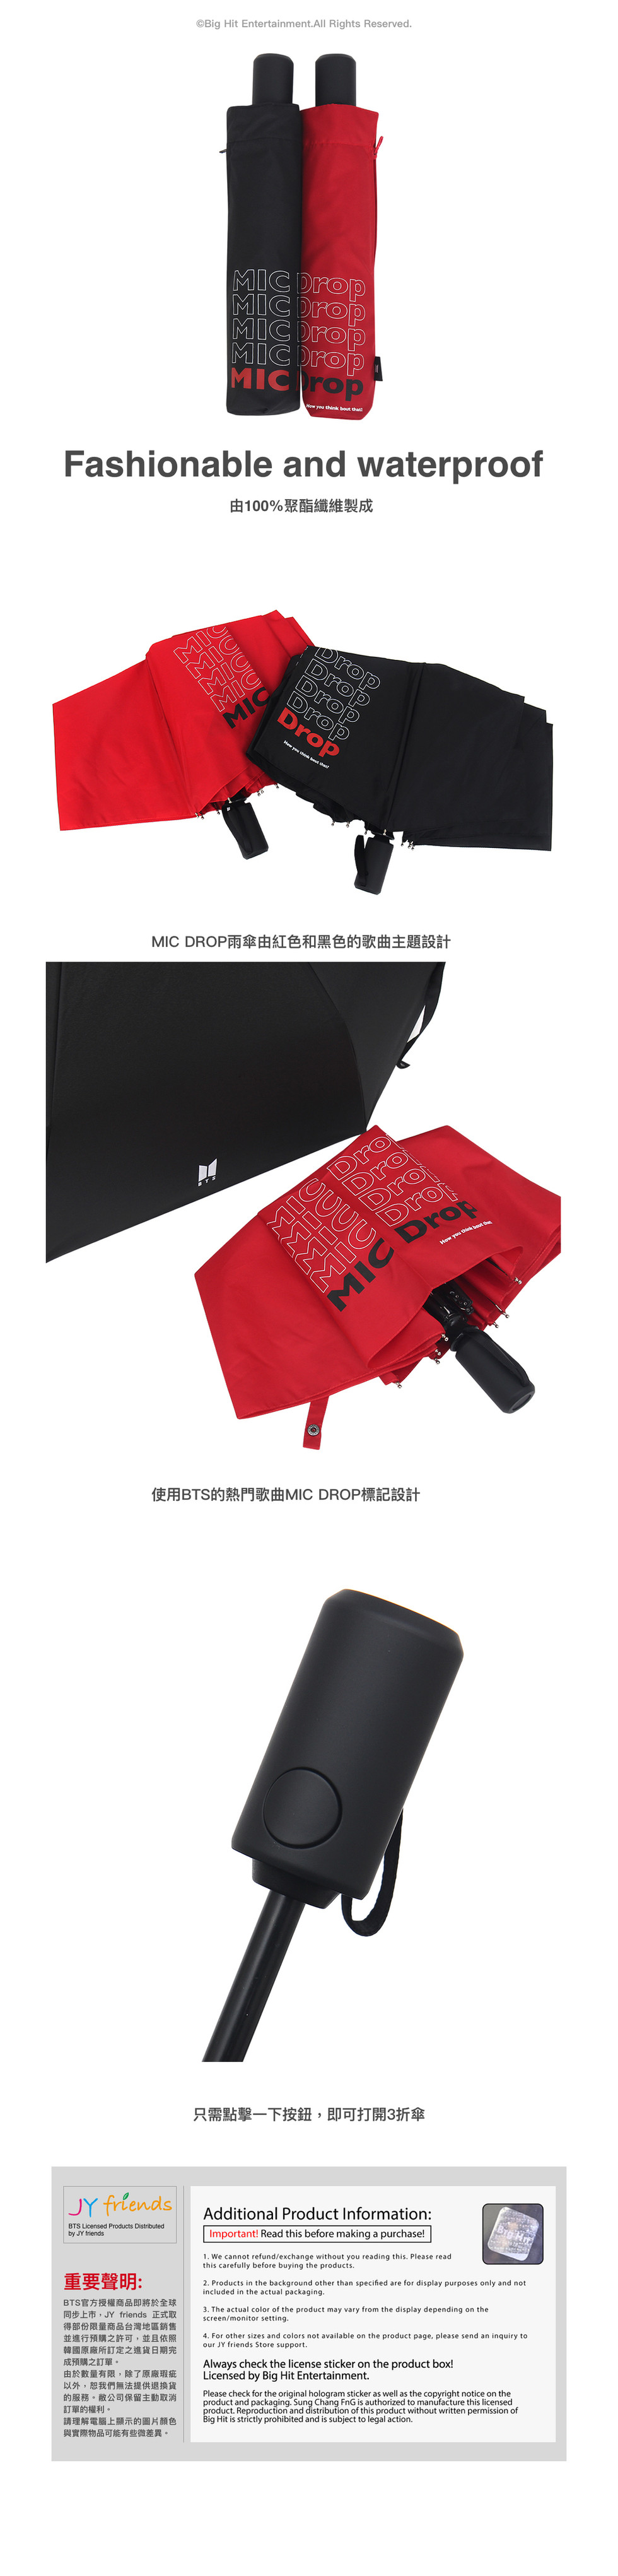 MIC DROP umbrella.jpg